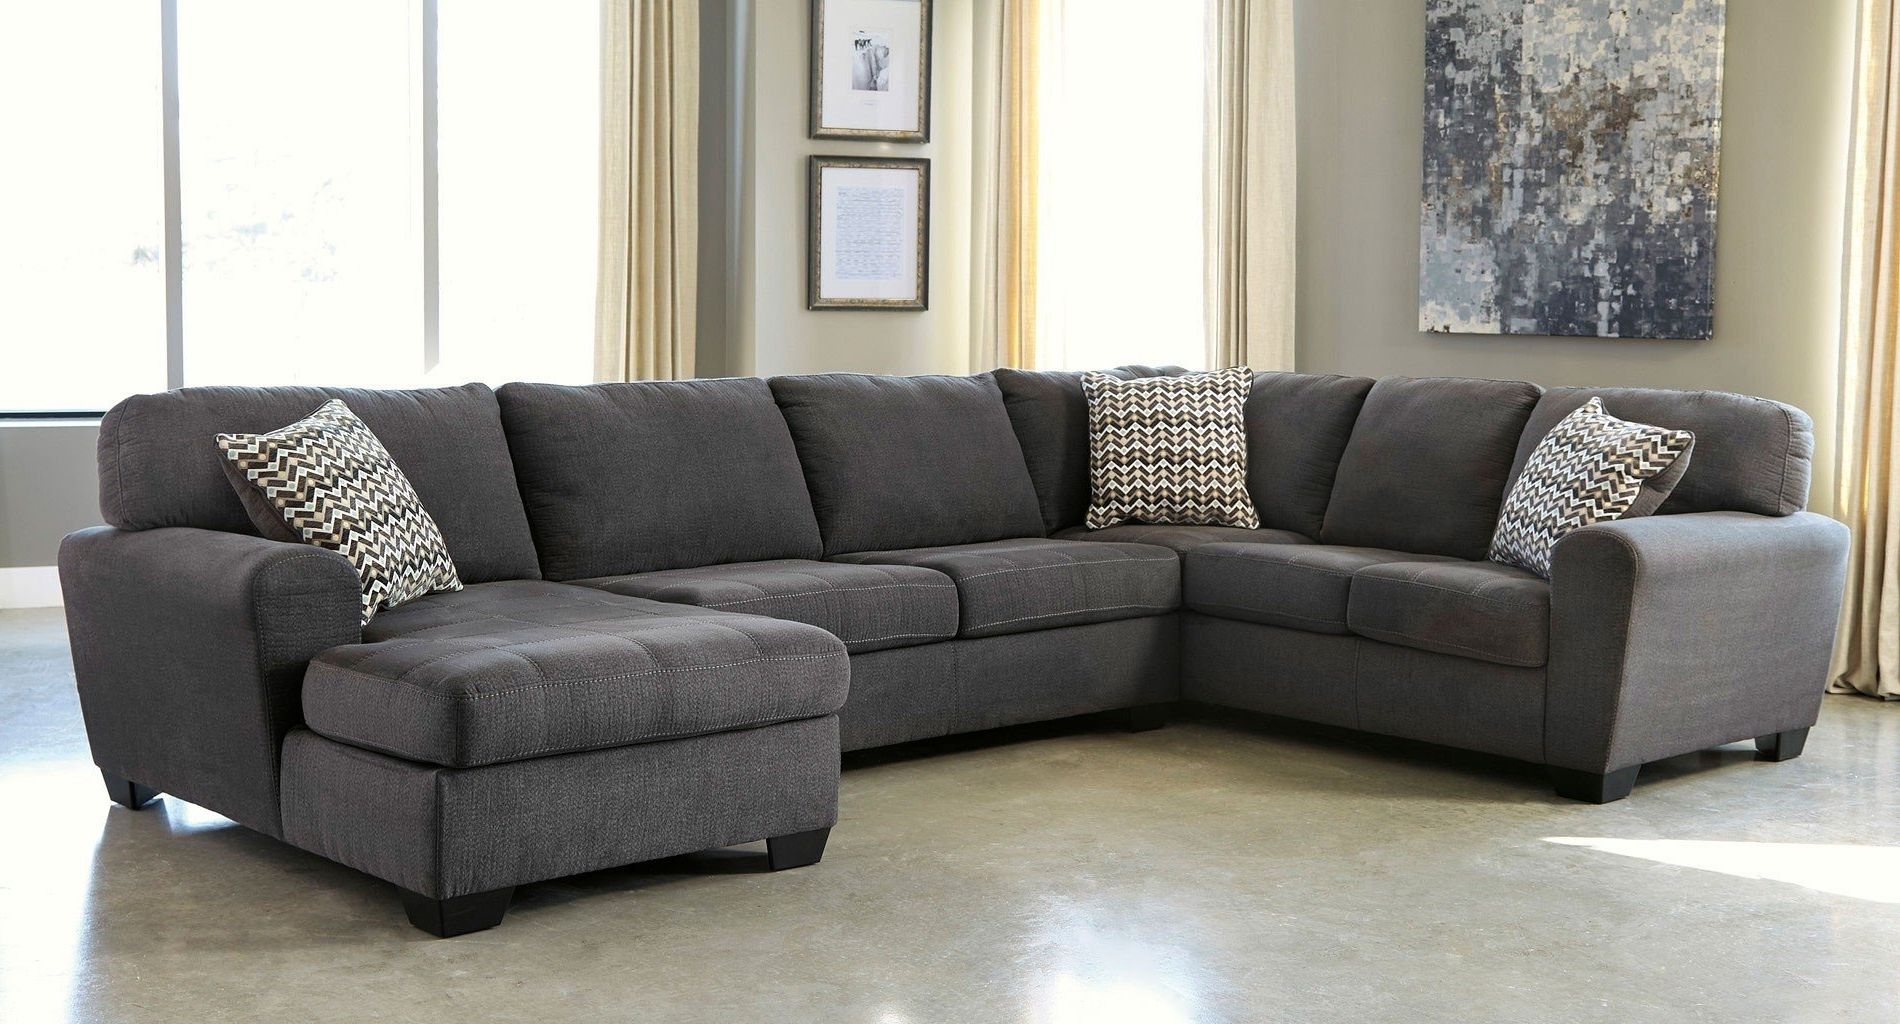 Sorenton Slate Right Facing Chaise Sectional – Sectionals – Living Within Widely Used Right Facing Chaise Sectionals (View 14 of 15)